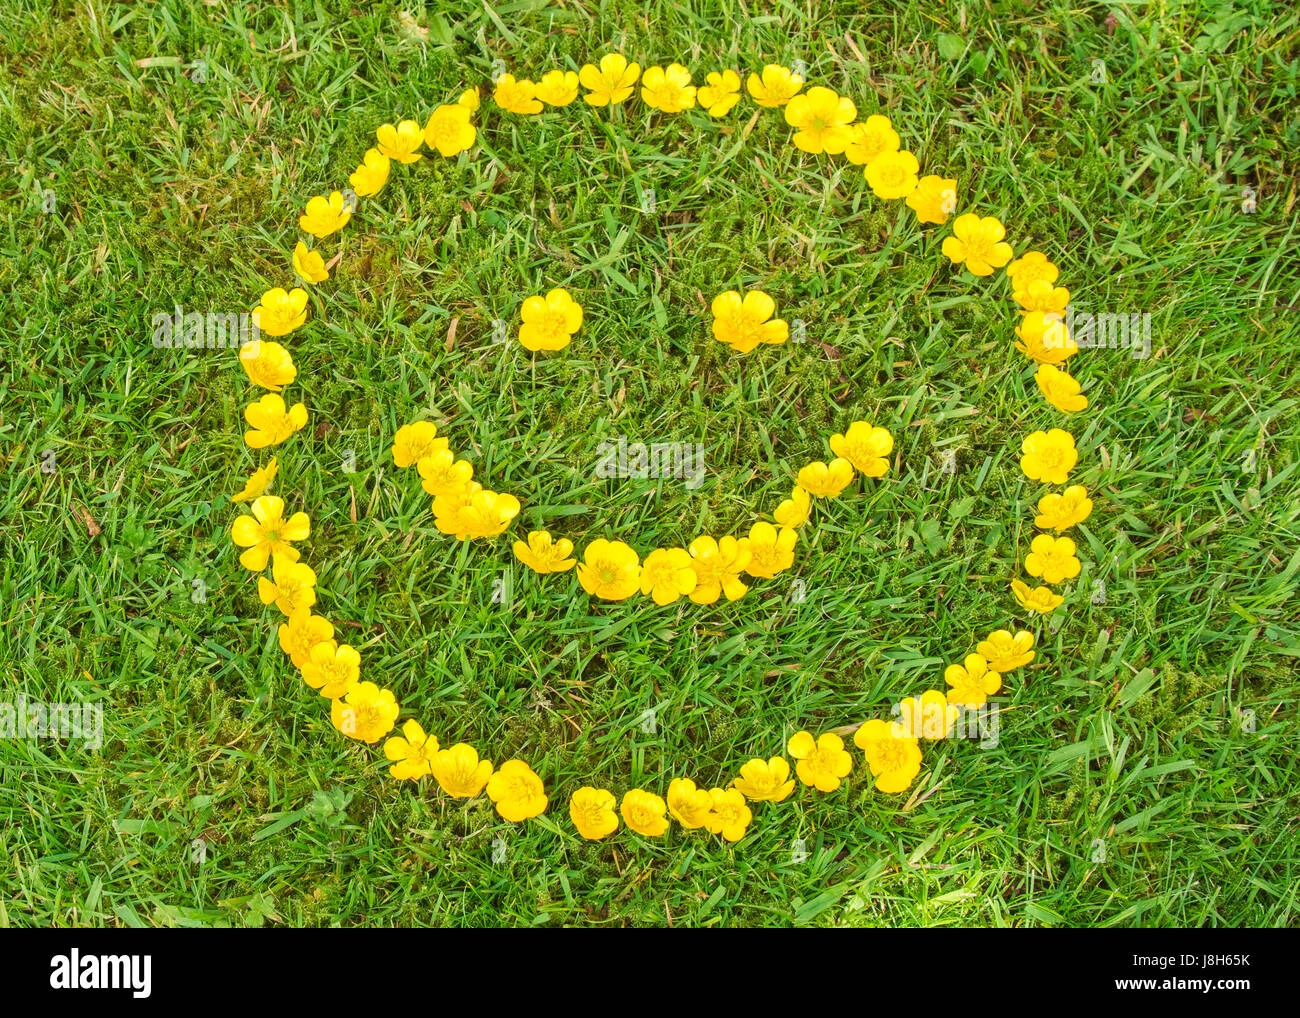 Smiley face made from buttercups - Stock Image